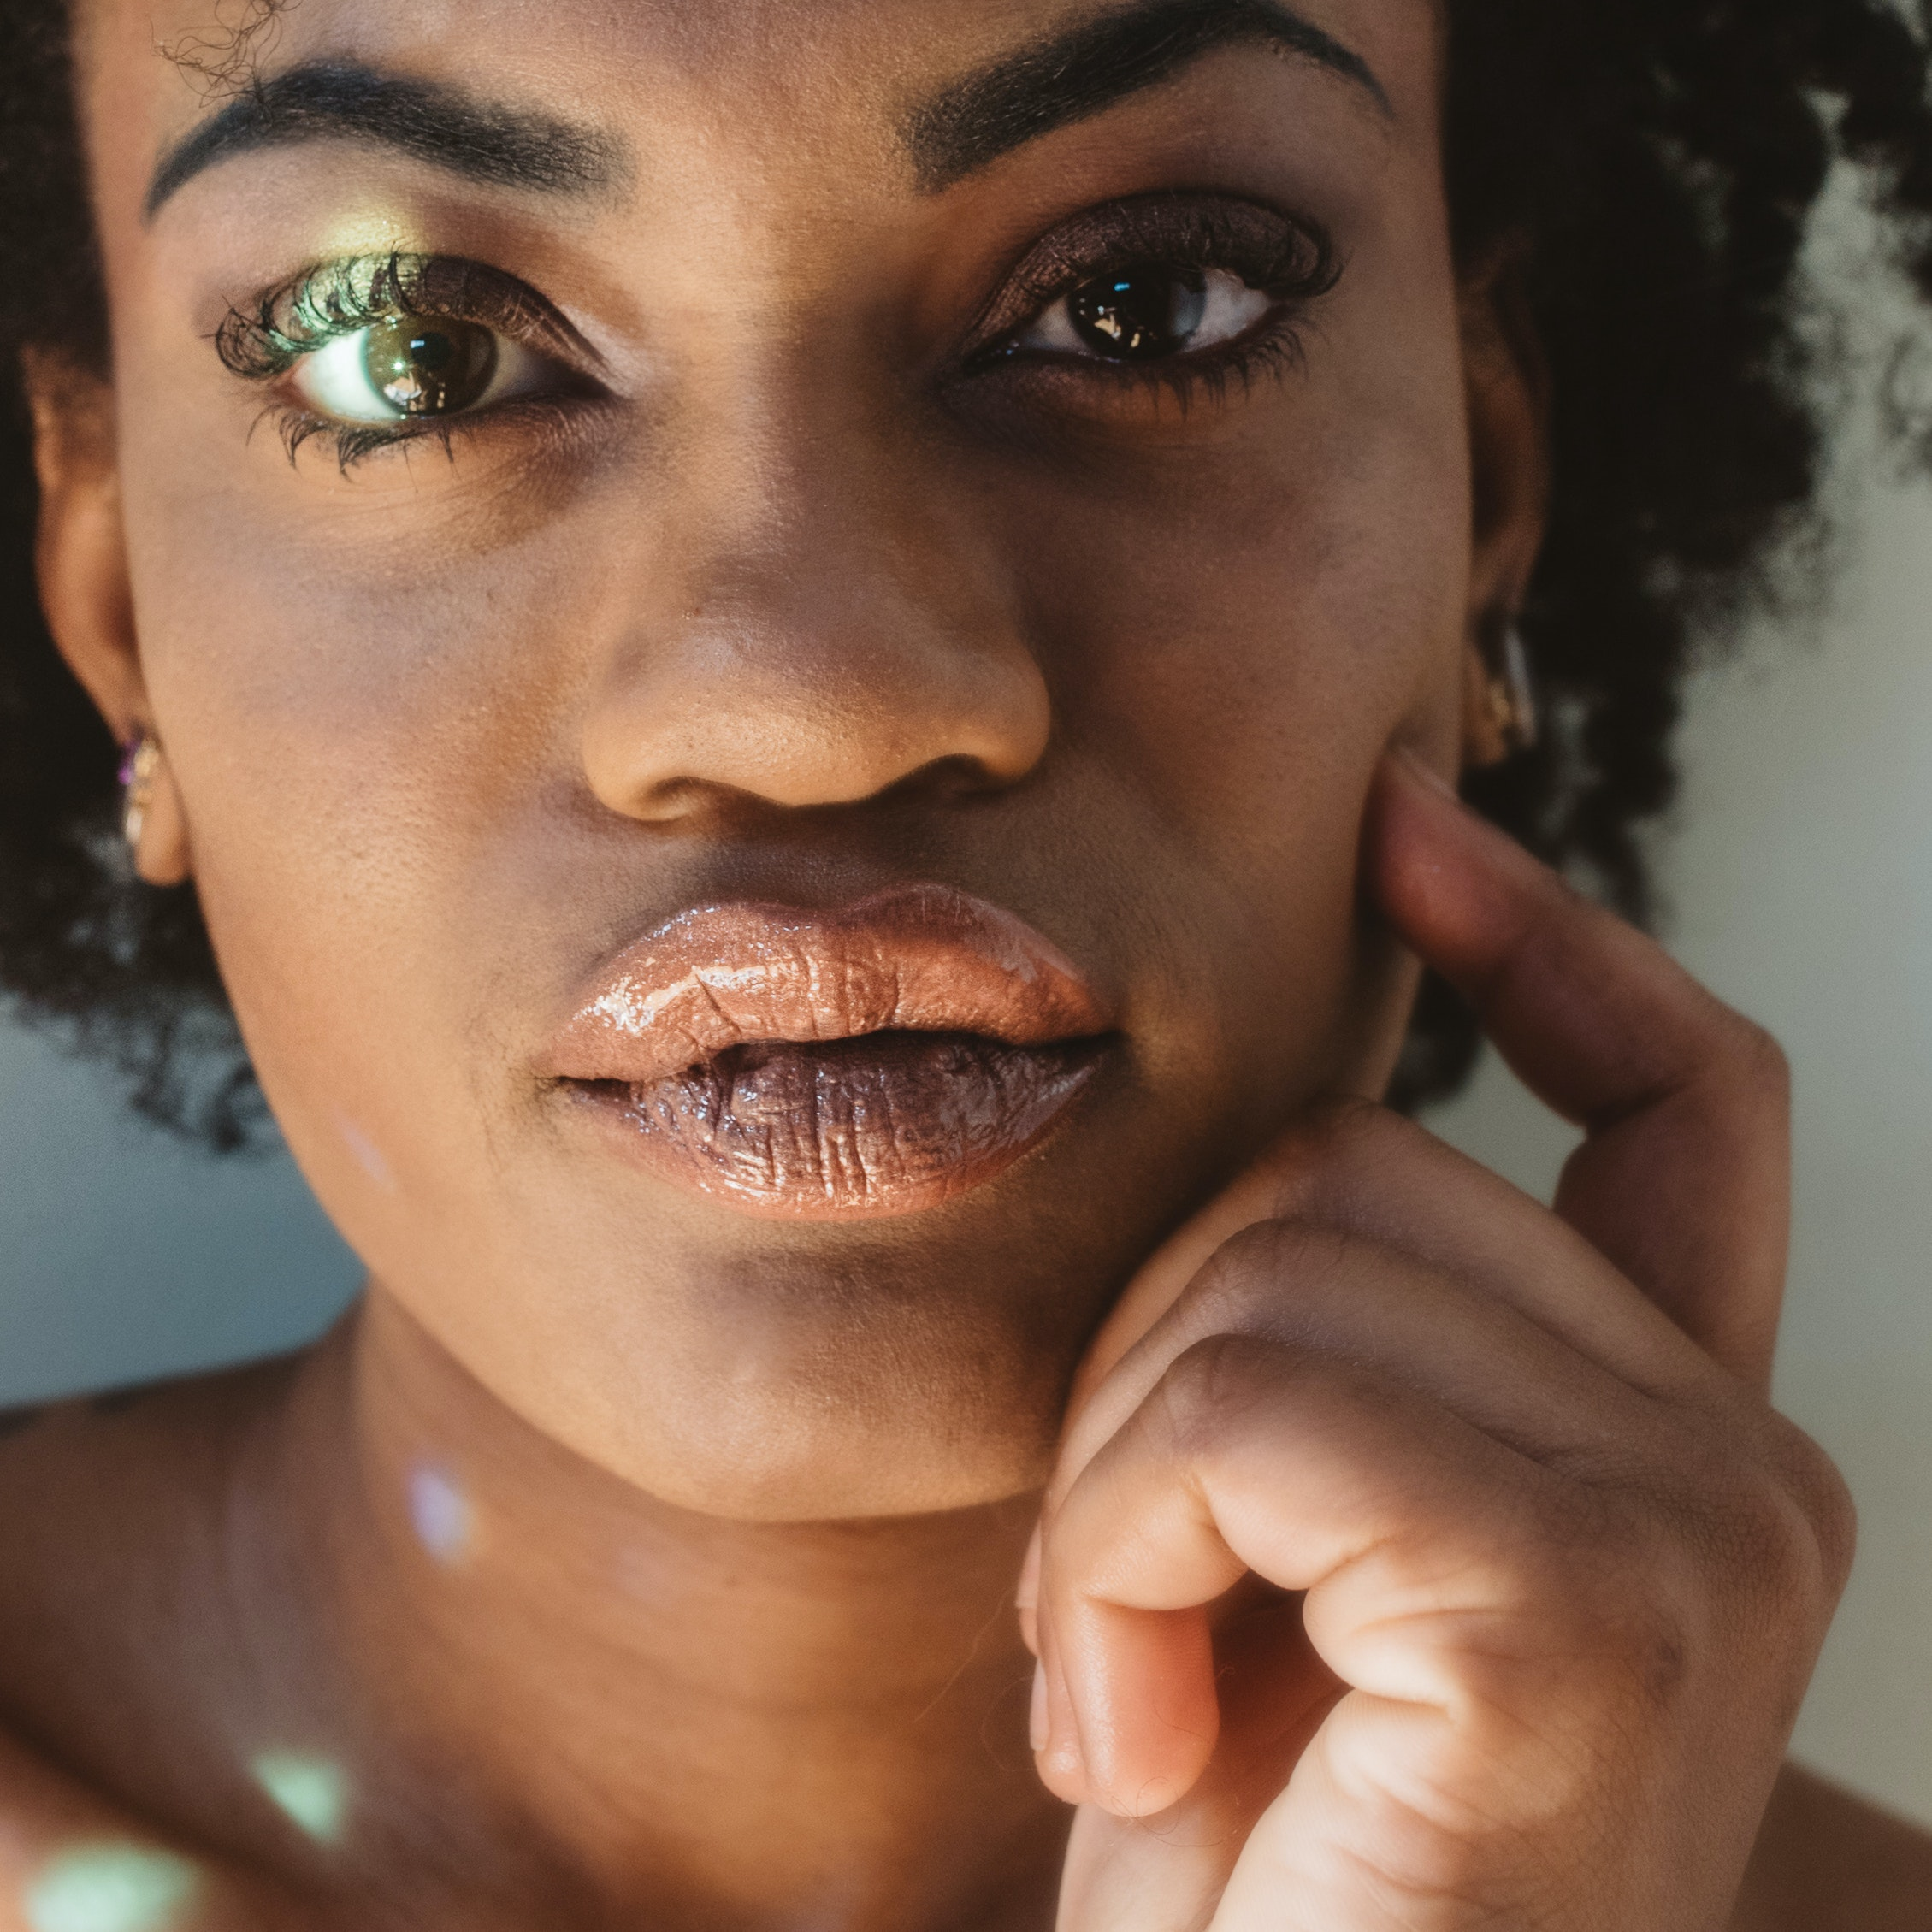 3 Ways You Can Make Sagging Cheeks Look Plumped Up